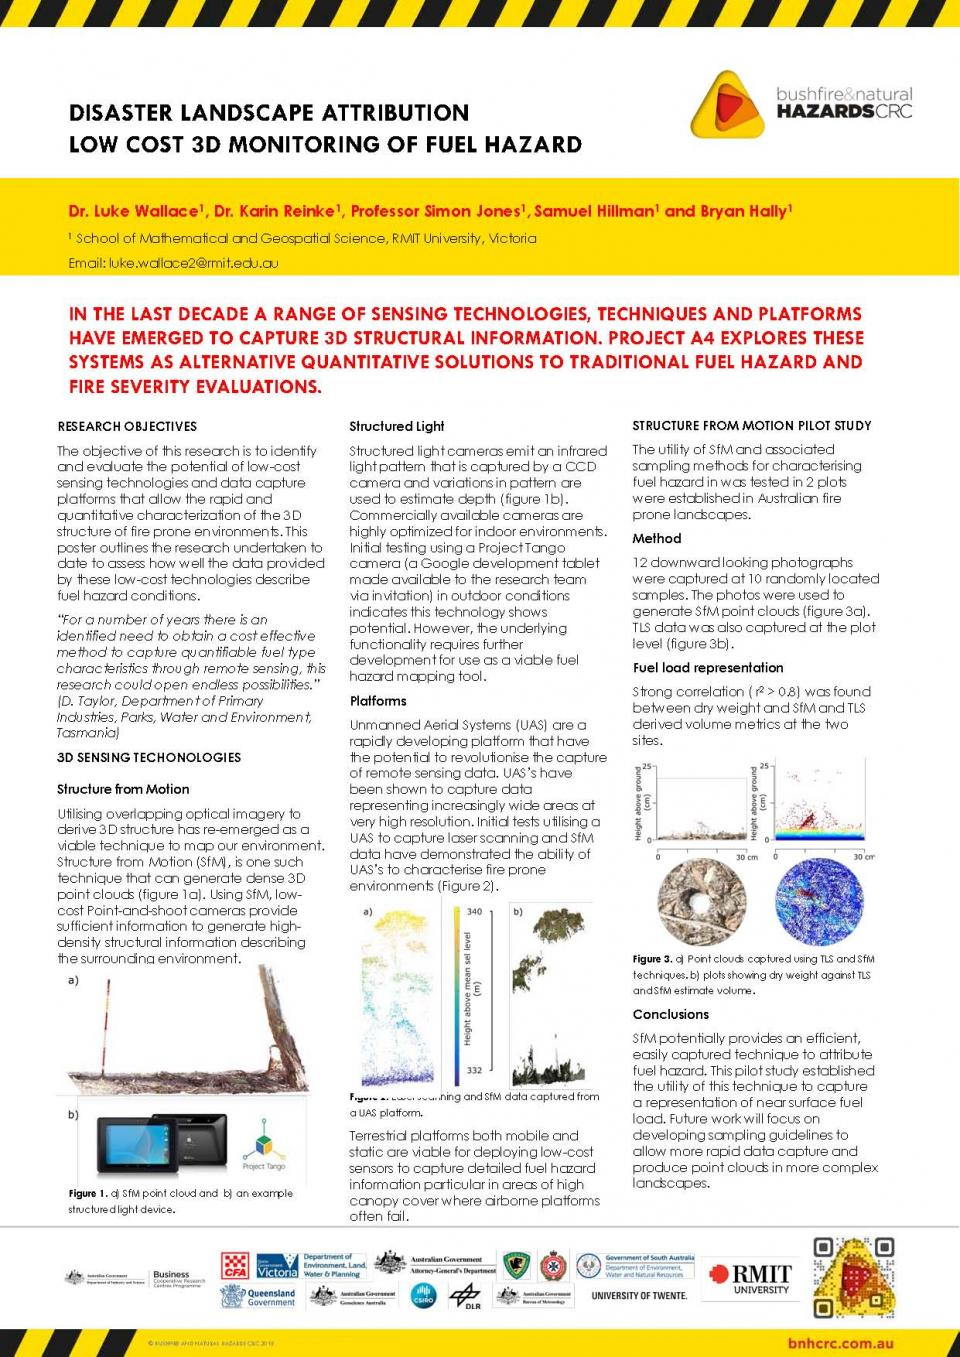 Disaster Landscape Attribution: Low Cost 3D Monitoring of Fuel Hazard